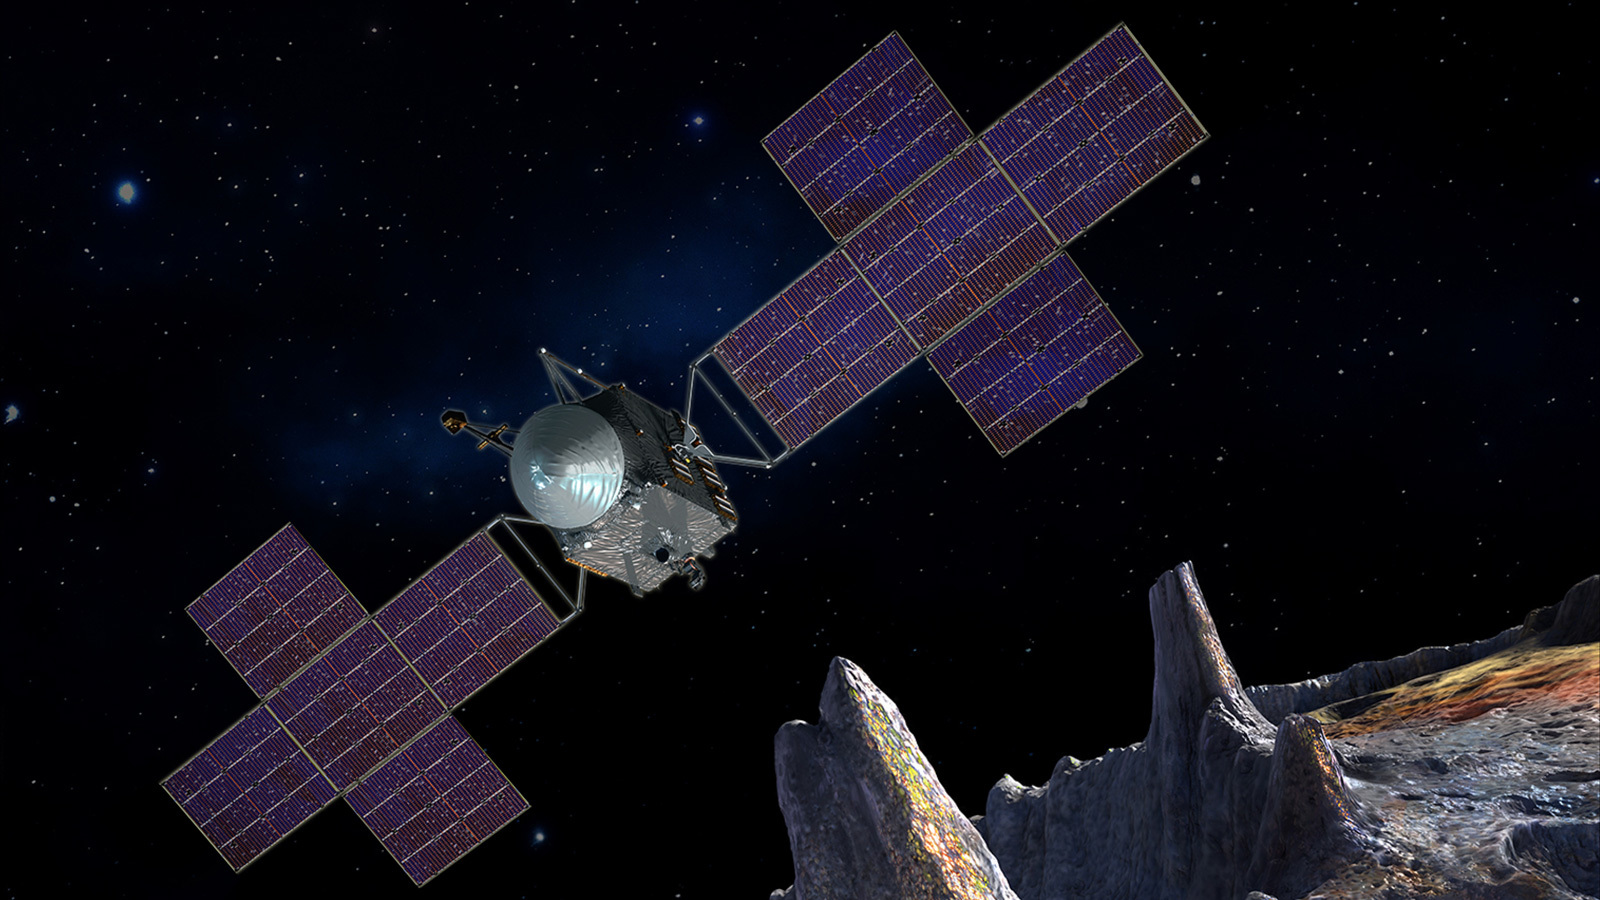 Psyche mission to reach metallic asteroid 4 years earlier